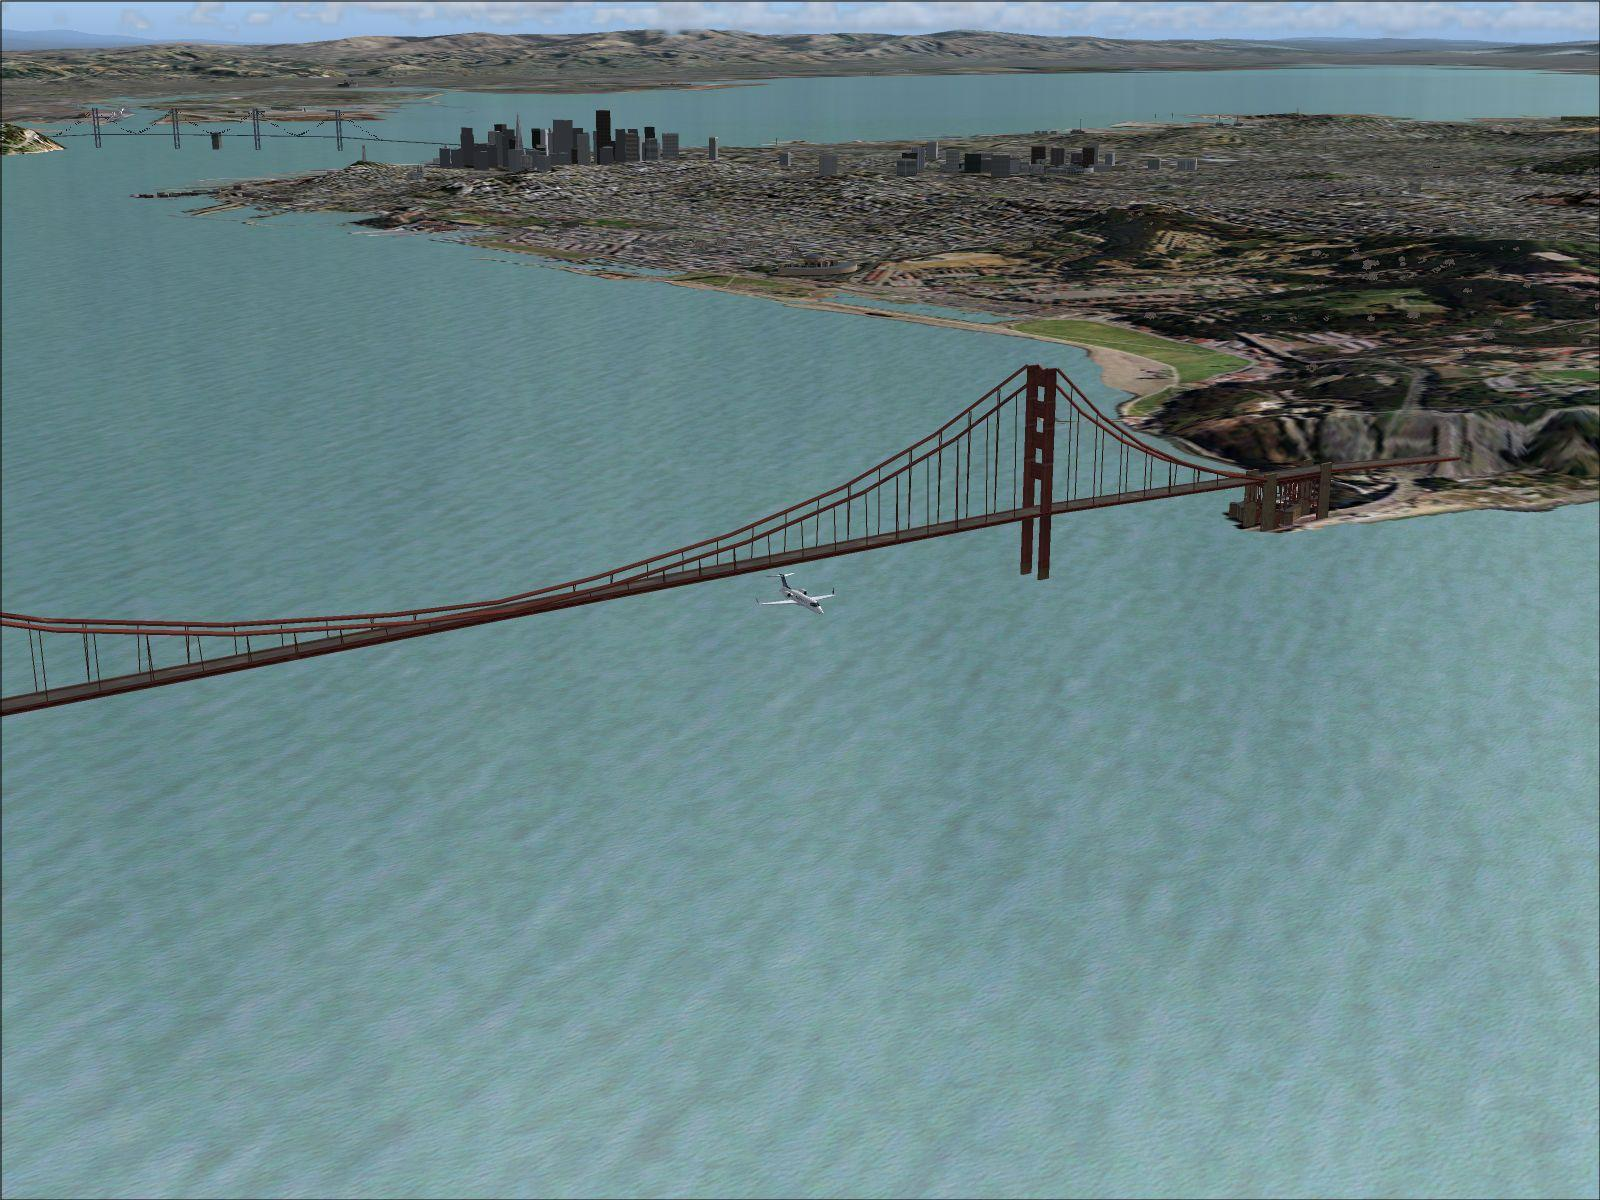 MegaCity USA2005 SanFrancisco 導入